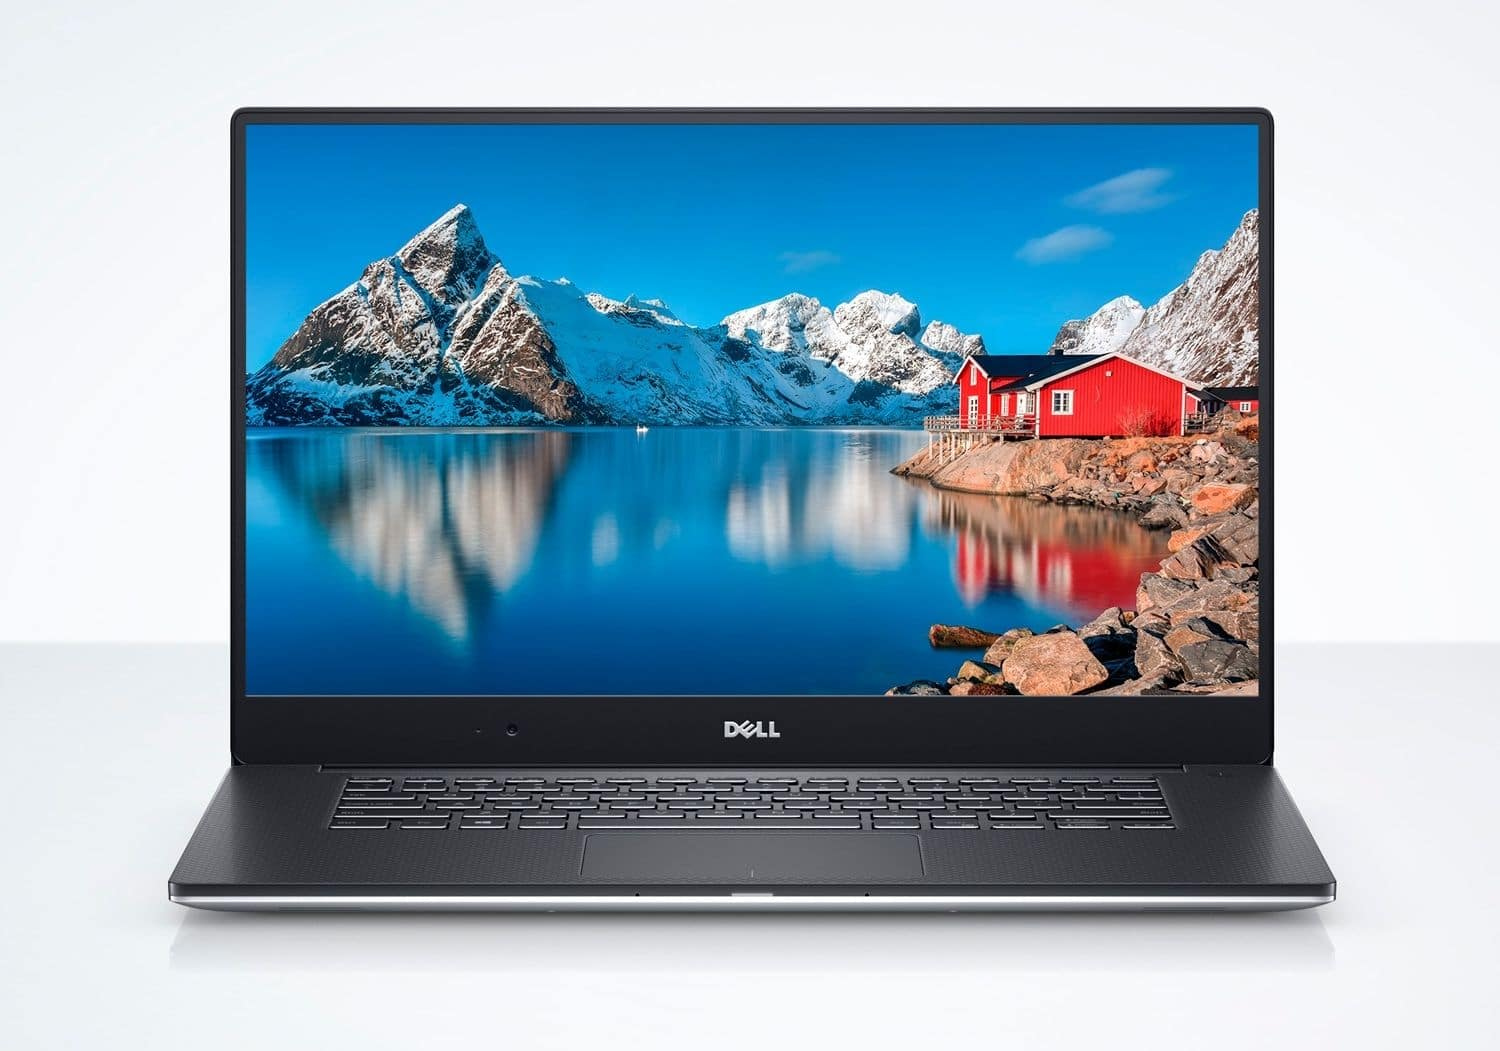 (Manufacturer Refurbished) Dell Precision 15 M5520 Touch-screen Laptop: i7-6820HQ, 16GB, 512GB PCIe SSD UHD $1459.99